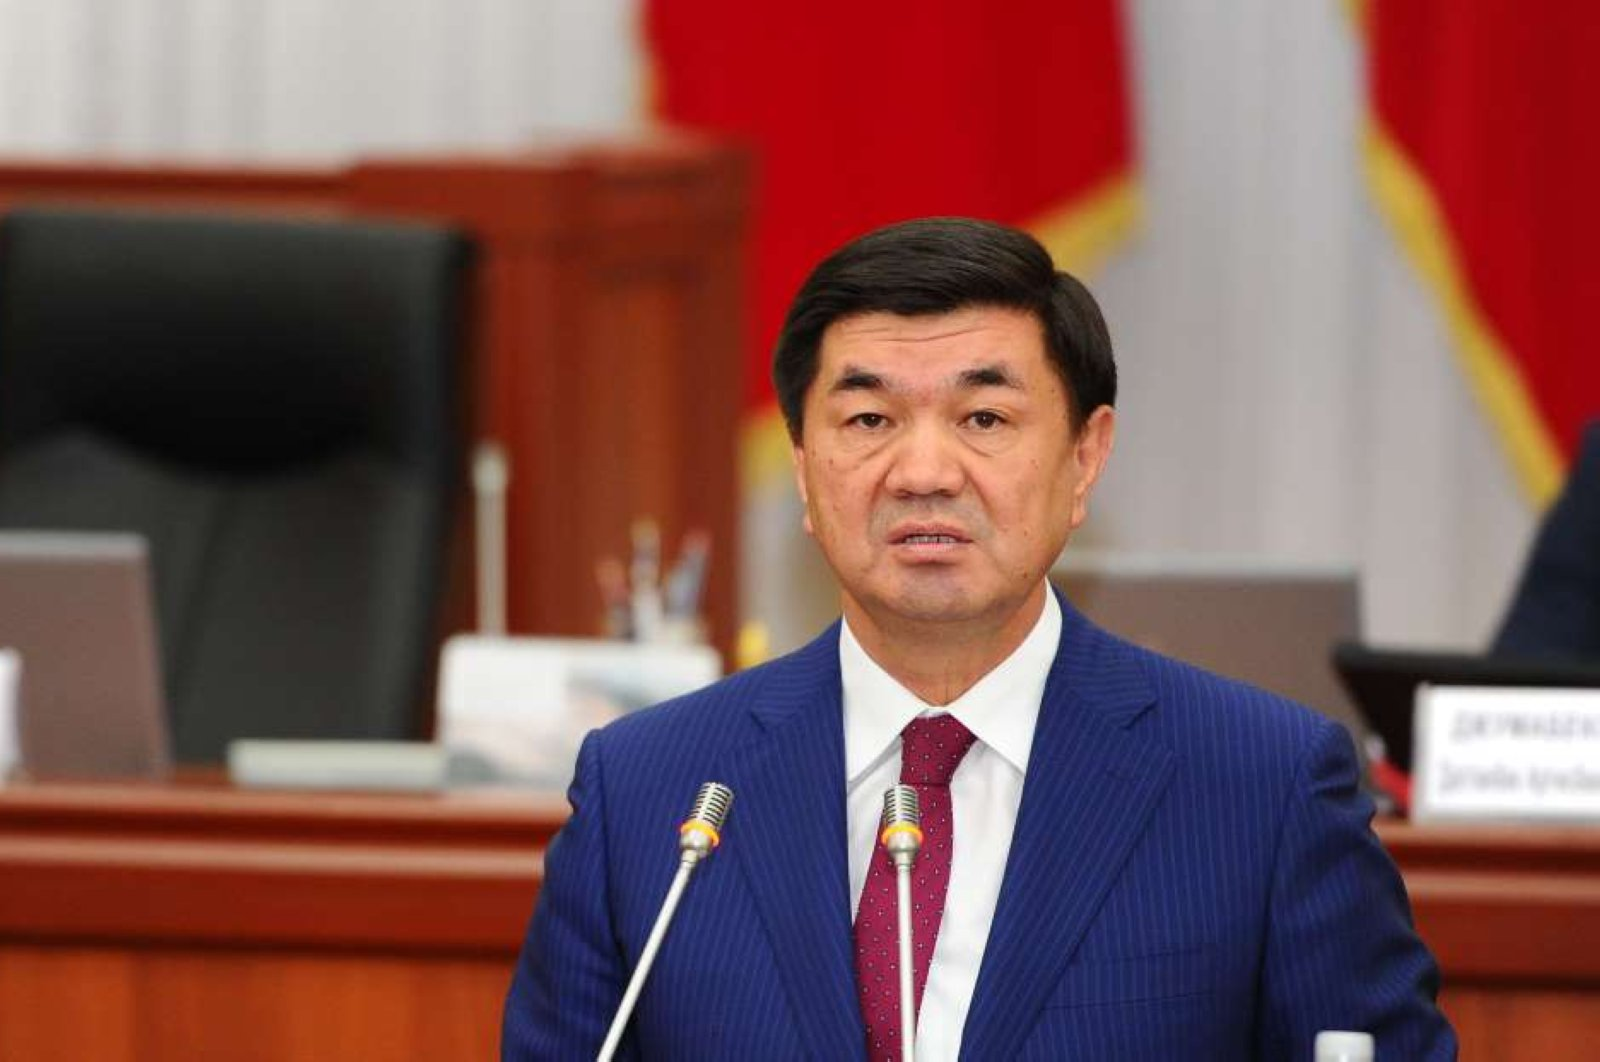 Kyrgyzstan's Prime Minister Mukhammedkalyi Abylgaziev seen in an undated photo. (AA Photo)